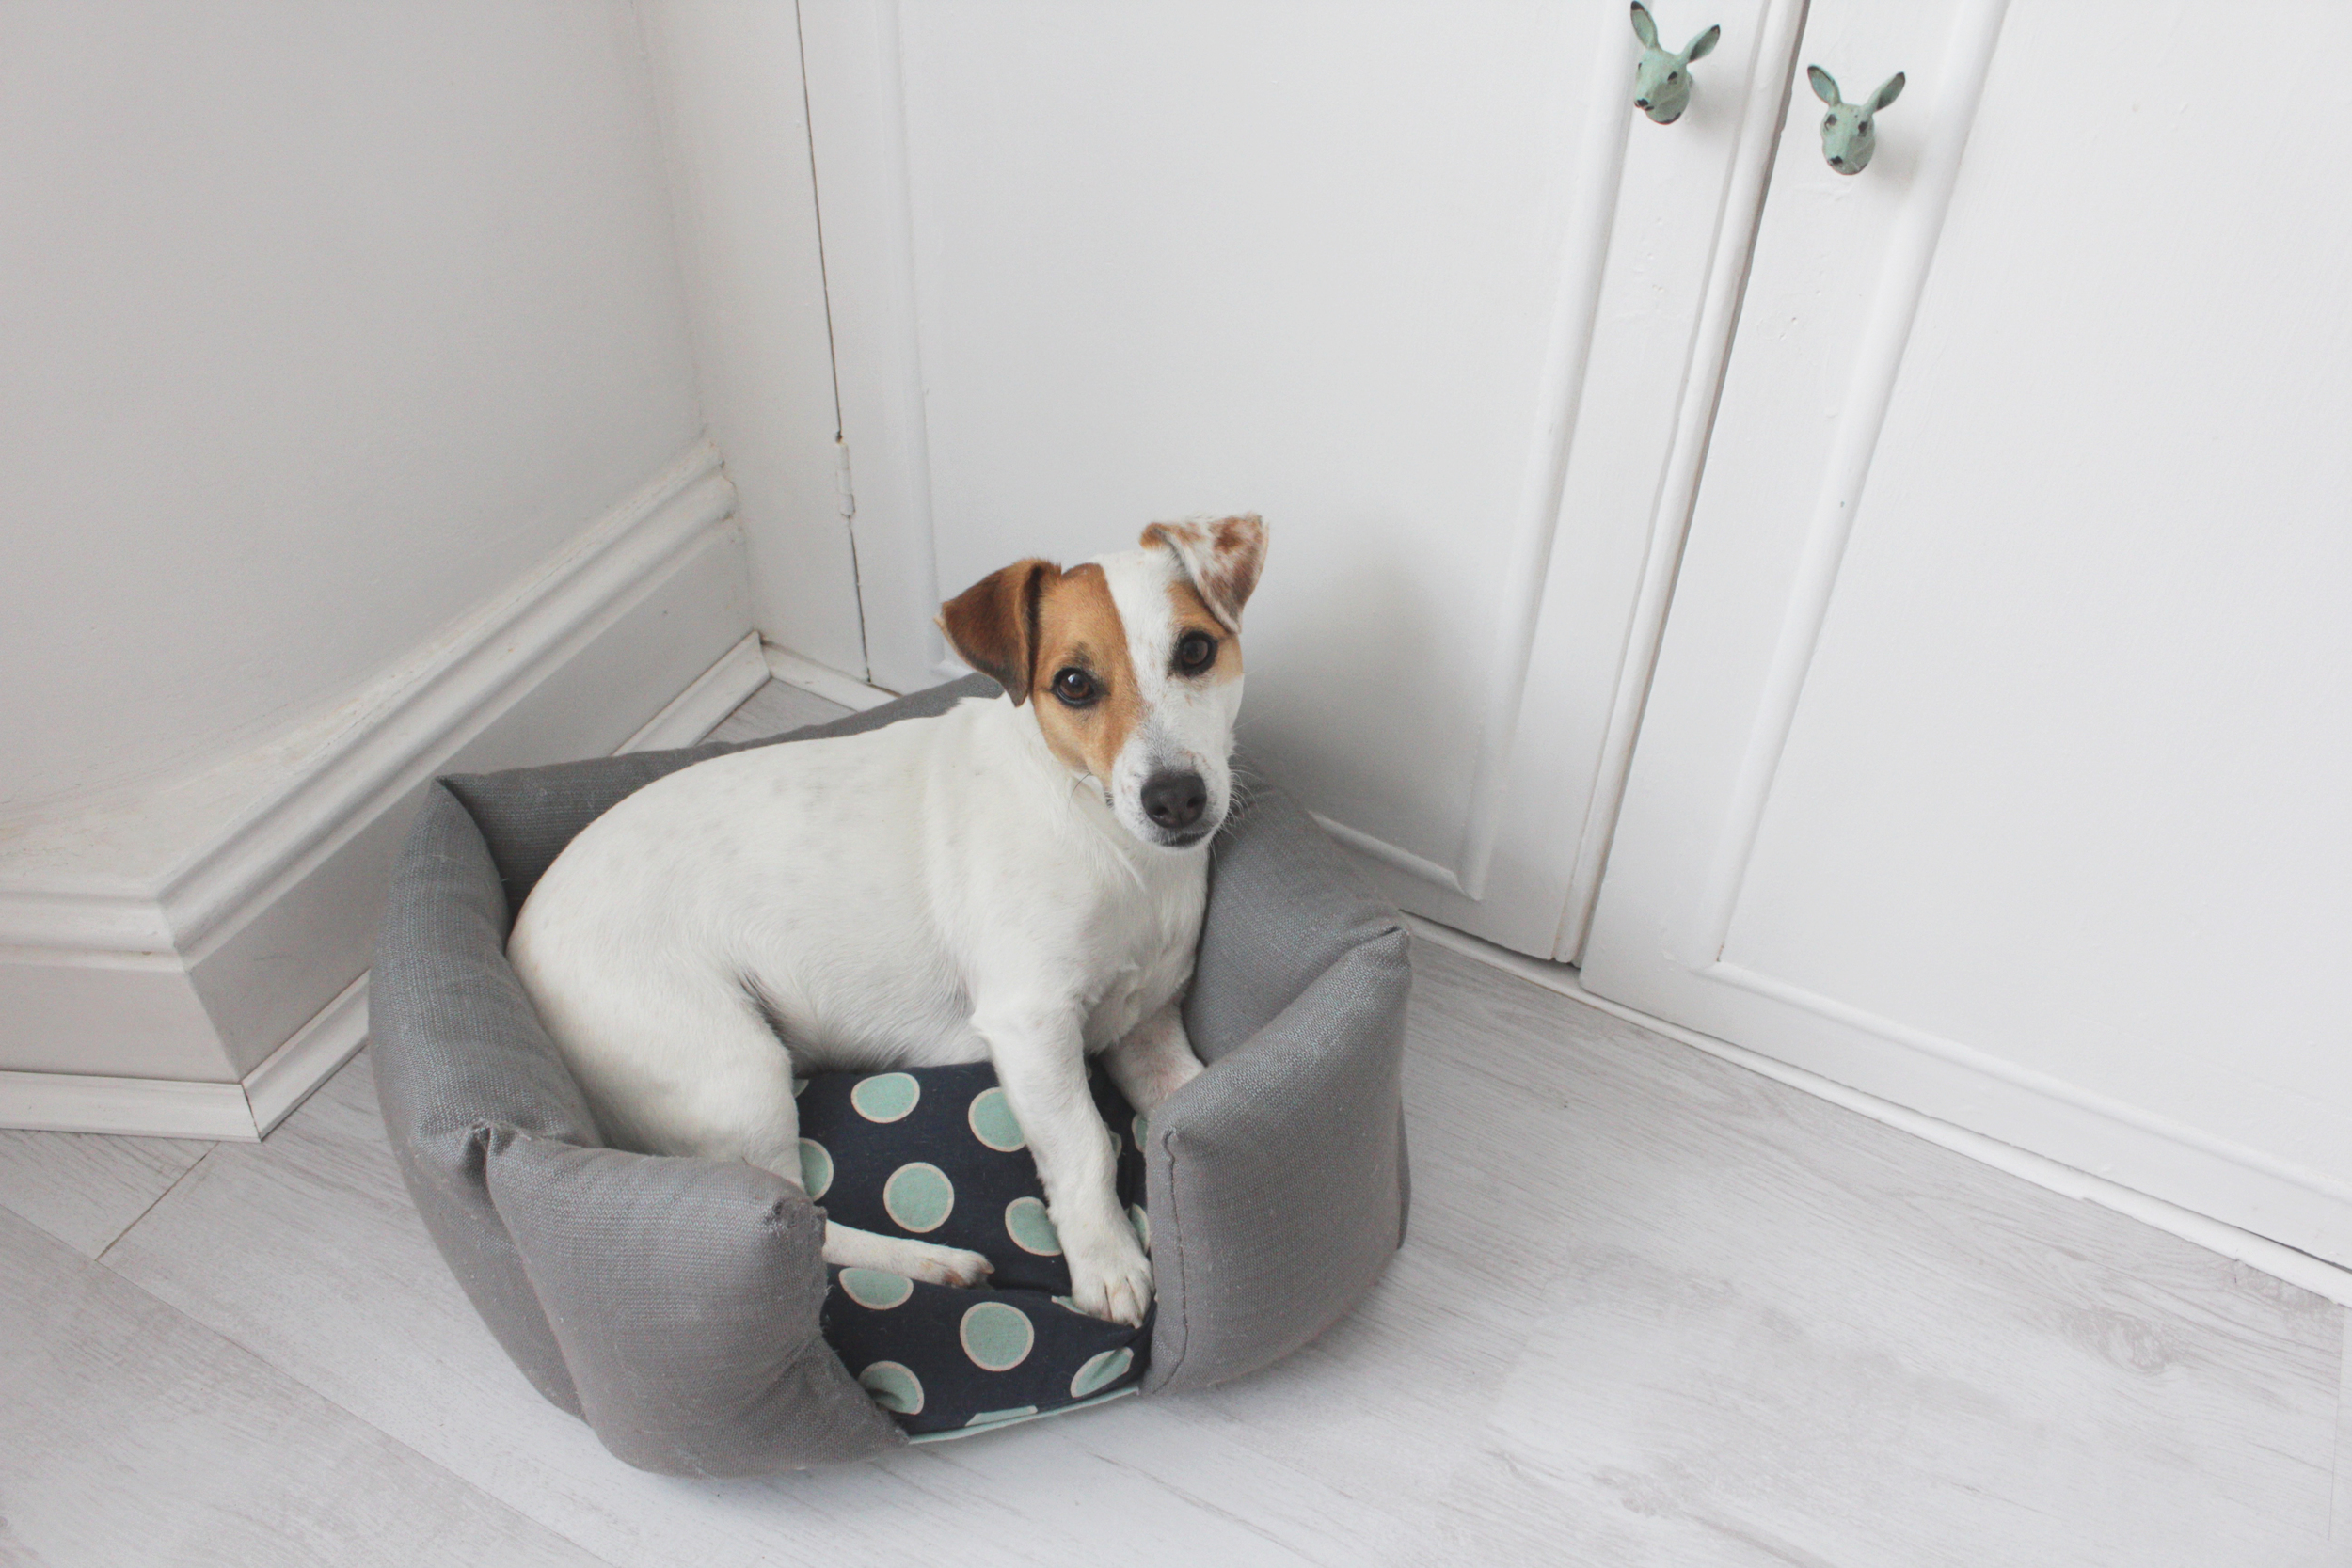 Upcycled duvet to a dog basket, tutorial by Hester's handmade home